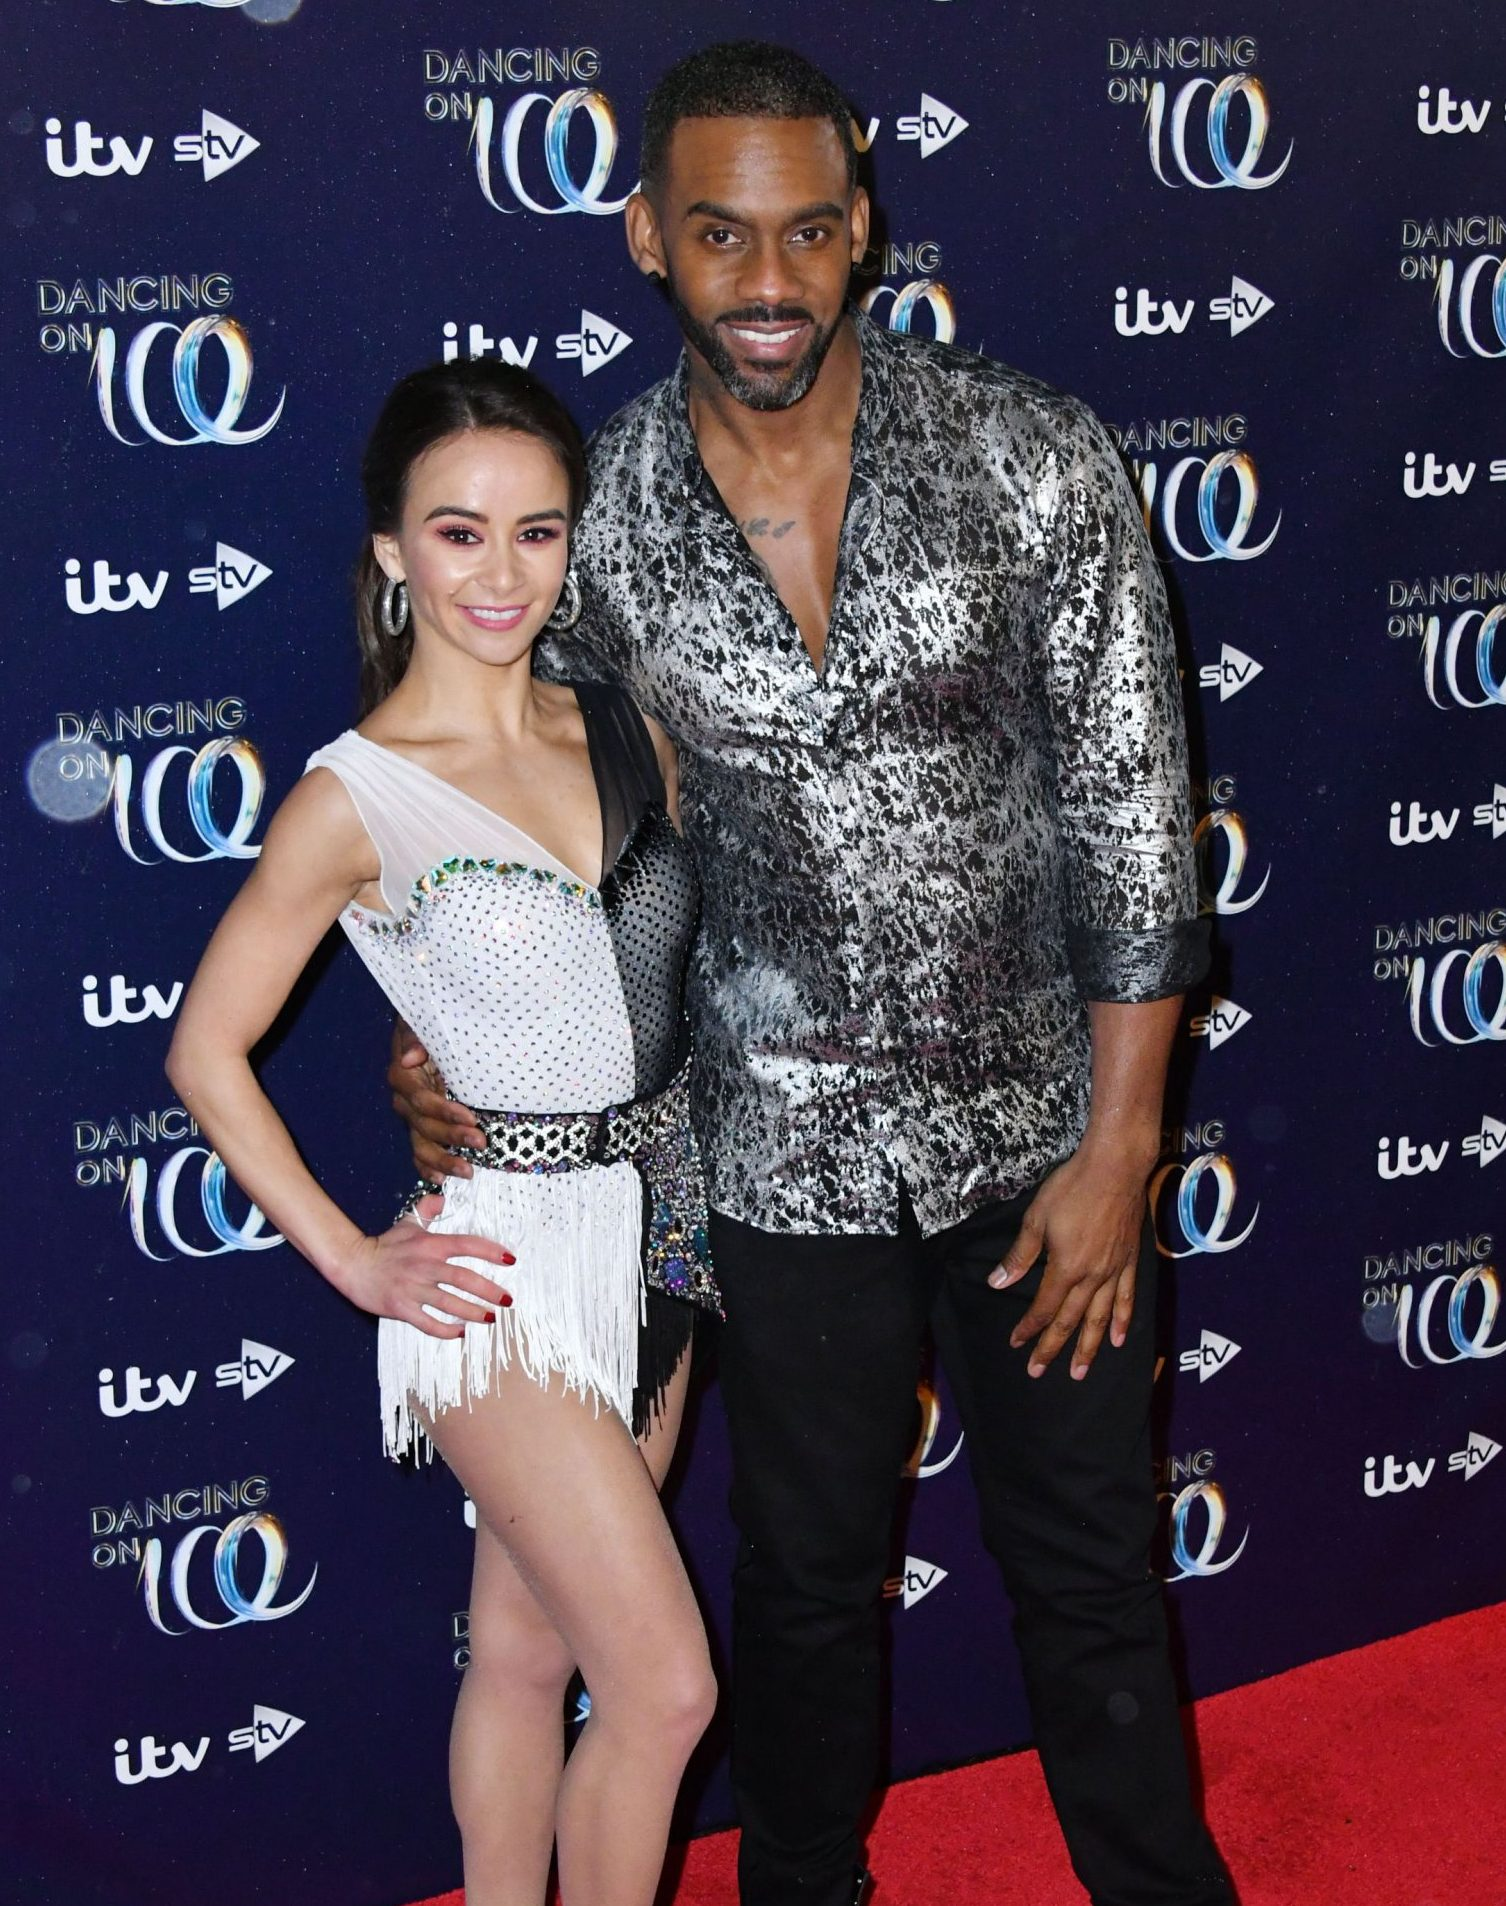 Mandatory Credit: Photo by Nils Jorgensen/REX (10037333ah) Carlotta Edwards, Richard Blackwood 'Dancing On Ice' TV show photocall, London, UK - 18 Dec 2018 Carlotta Edwards, Richard Blackwood at launch to celebrate the new series of the ITV Dancing On Ice skating competition, at Natural History Museum